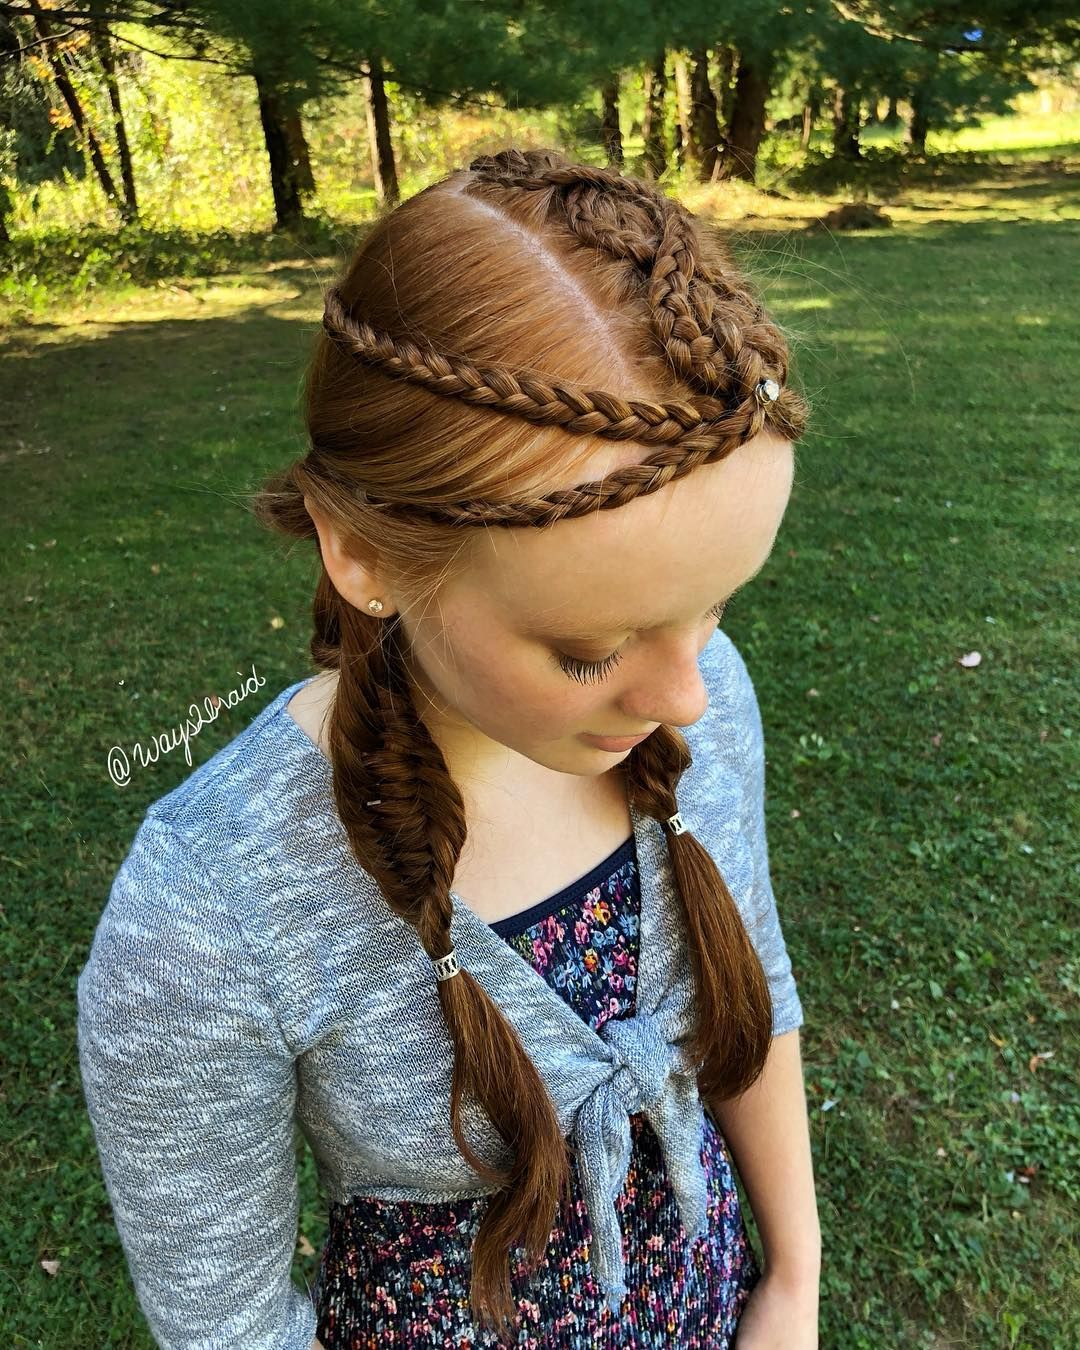 Abby S Hairstyles On Instagram You Miss 100 Of The Shots You Don T Take Warrior Princess Style Kind Hair Styles Princess Style Warrior Princess